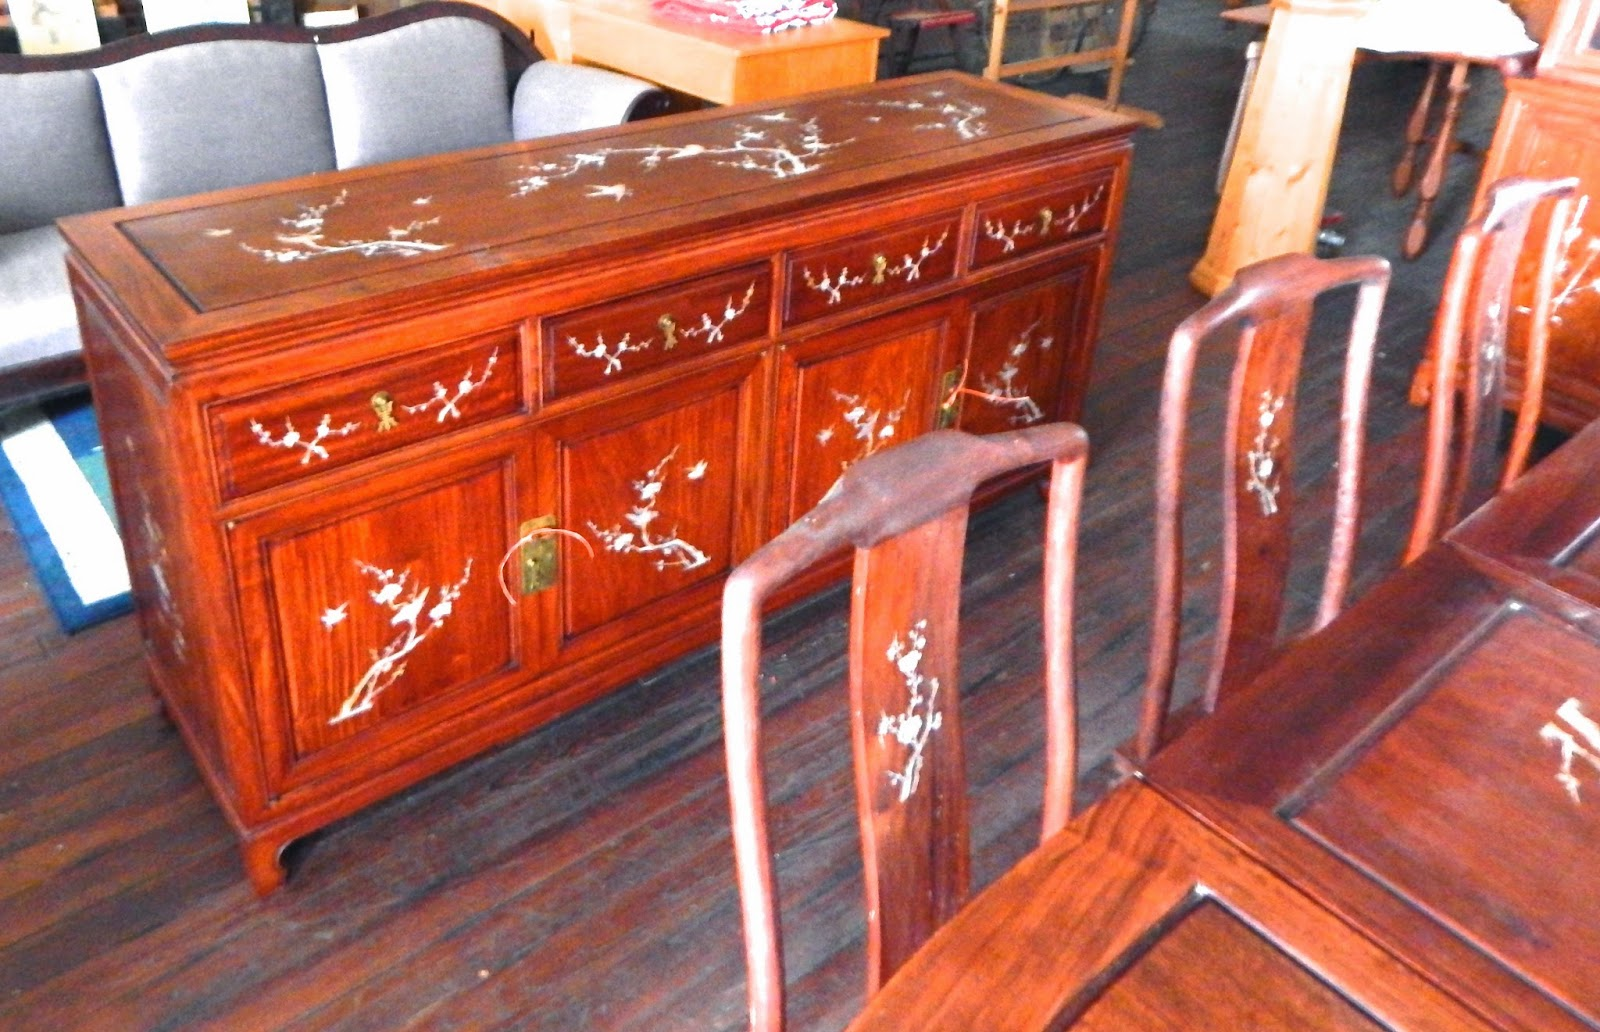 Vicksburg 39 s adolph rose antique shop why buy modern junk for We buy old furniture